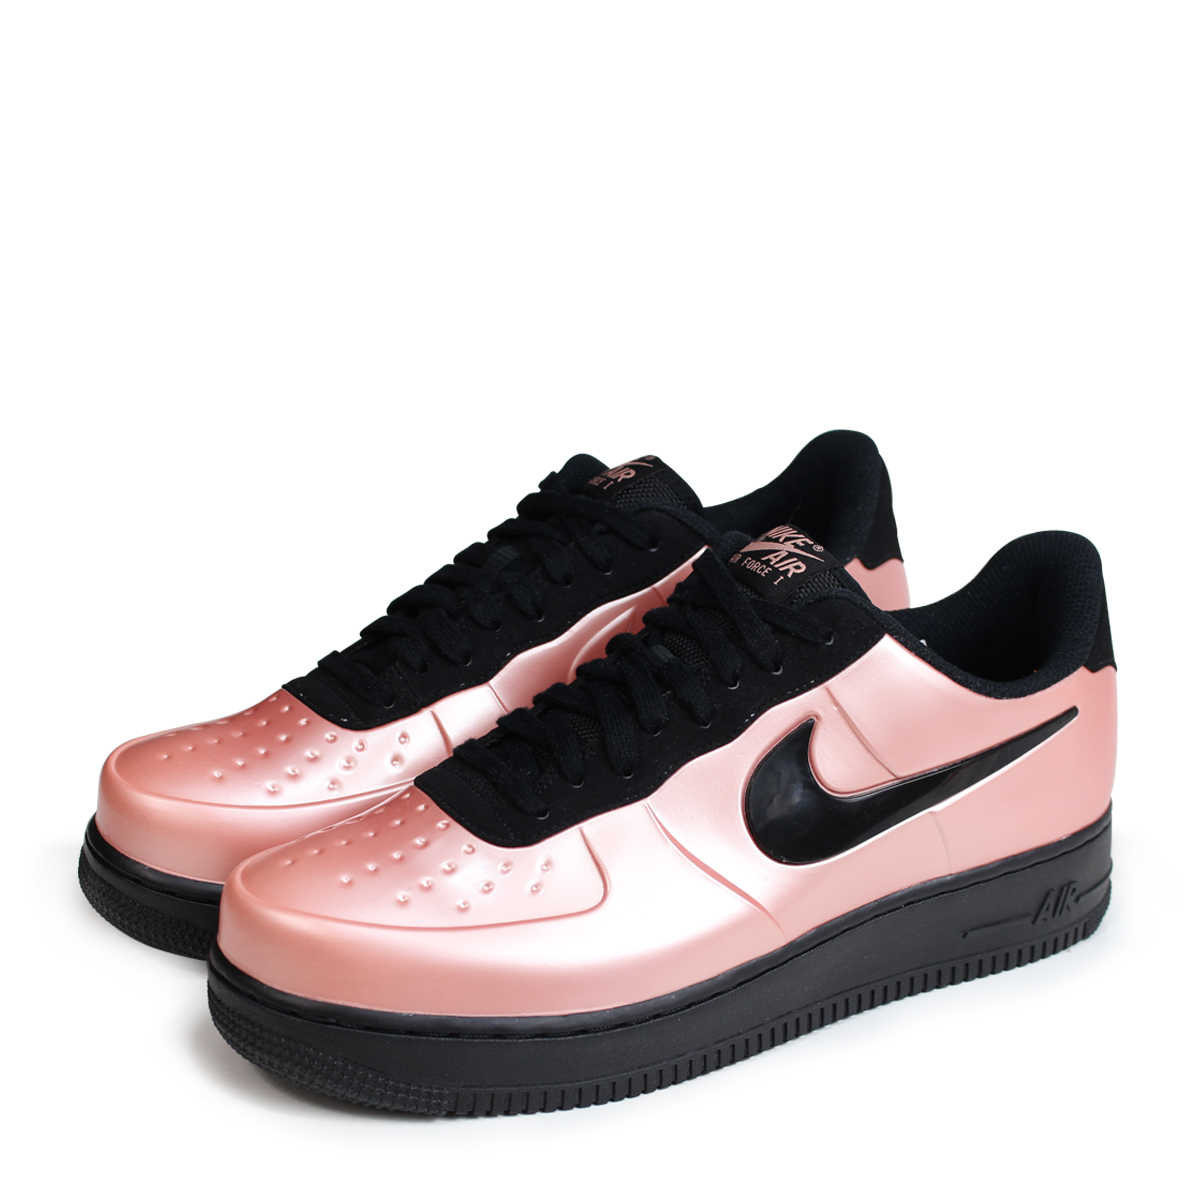 ca837c96279f4 NIKE AIR FORCE 1 FOAMPOSITE PRO CUPSOLE Nike air force 1 フォームポジットスニーカーメンズ  AJ3664-600 pink  load planned Shinnyu load in reservation product ...